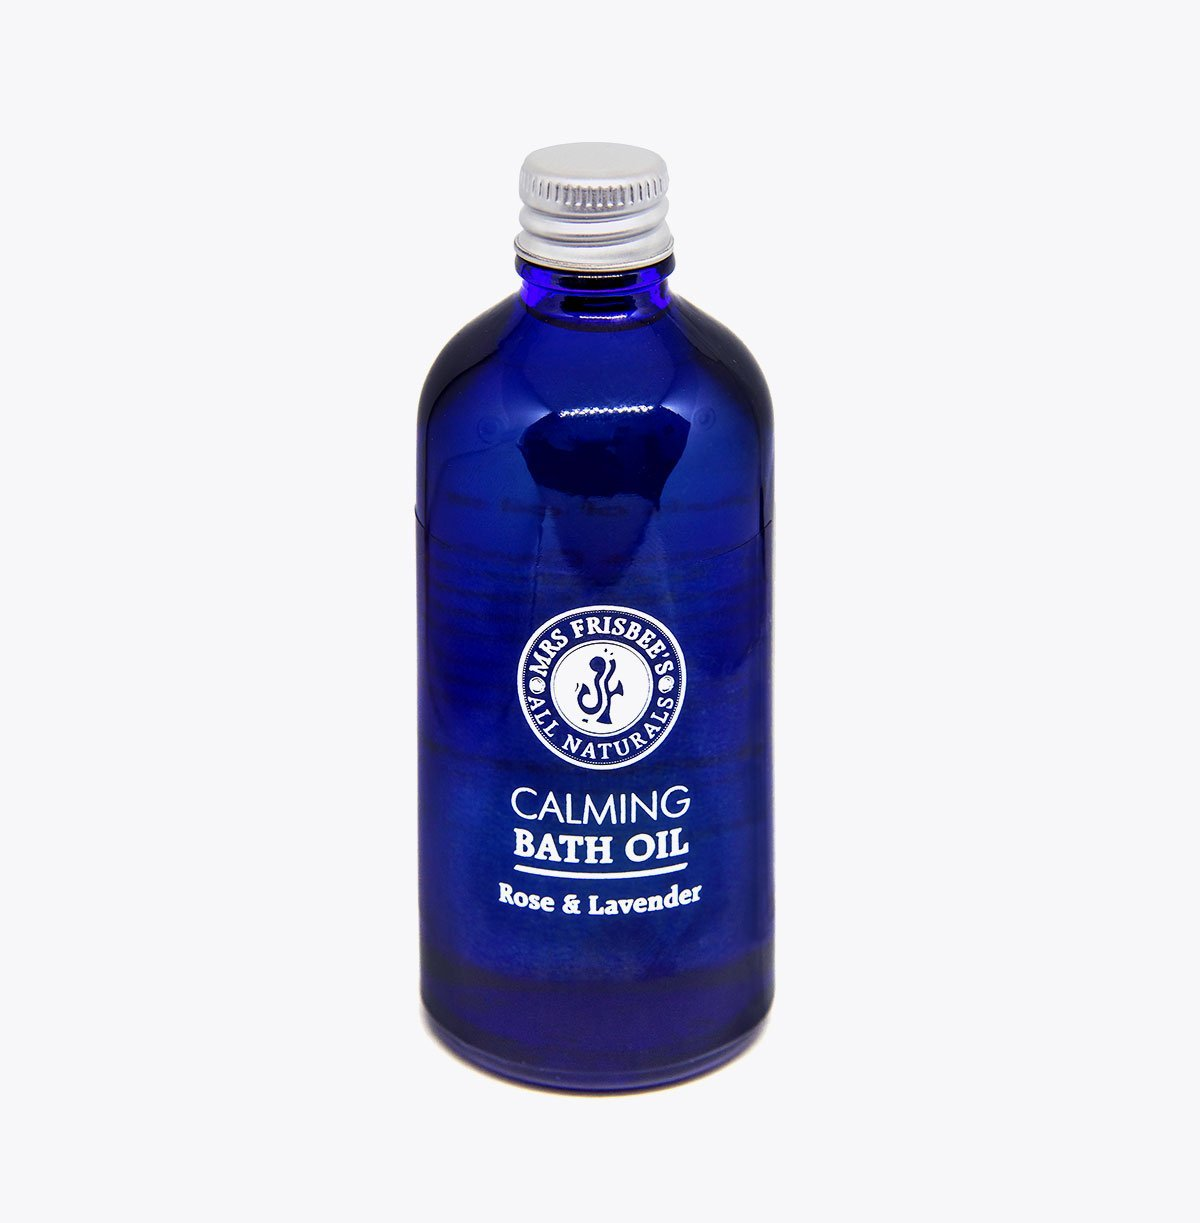 Calming Bath Oil with Rose and Lavender pure essential oils, in glass bottle, 100ml